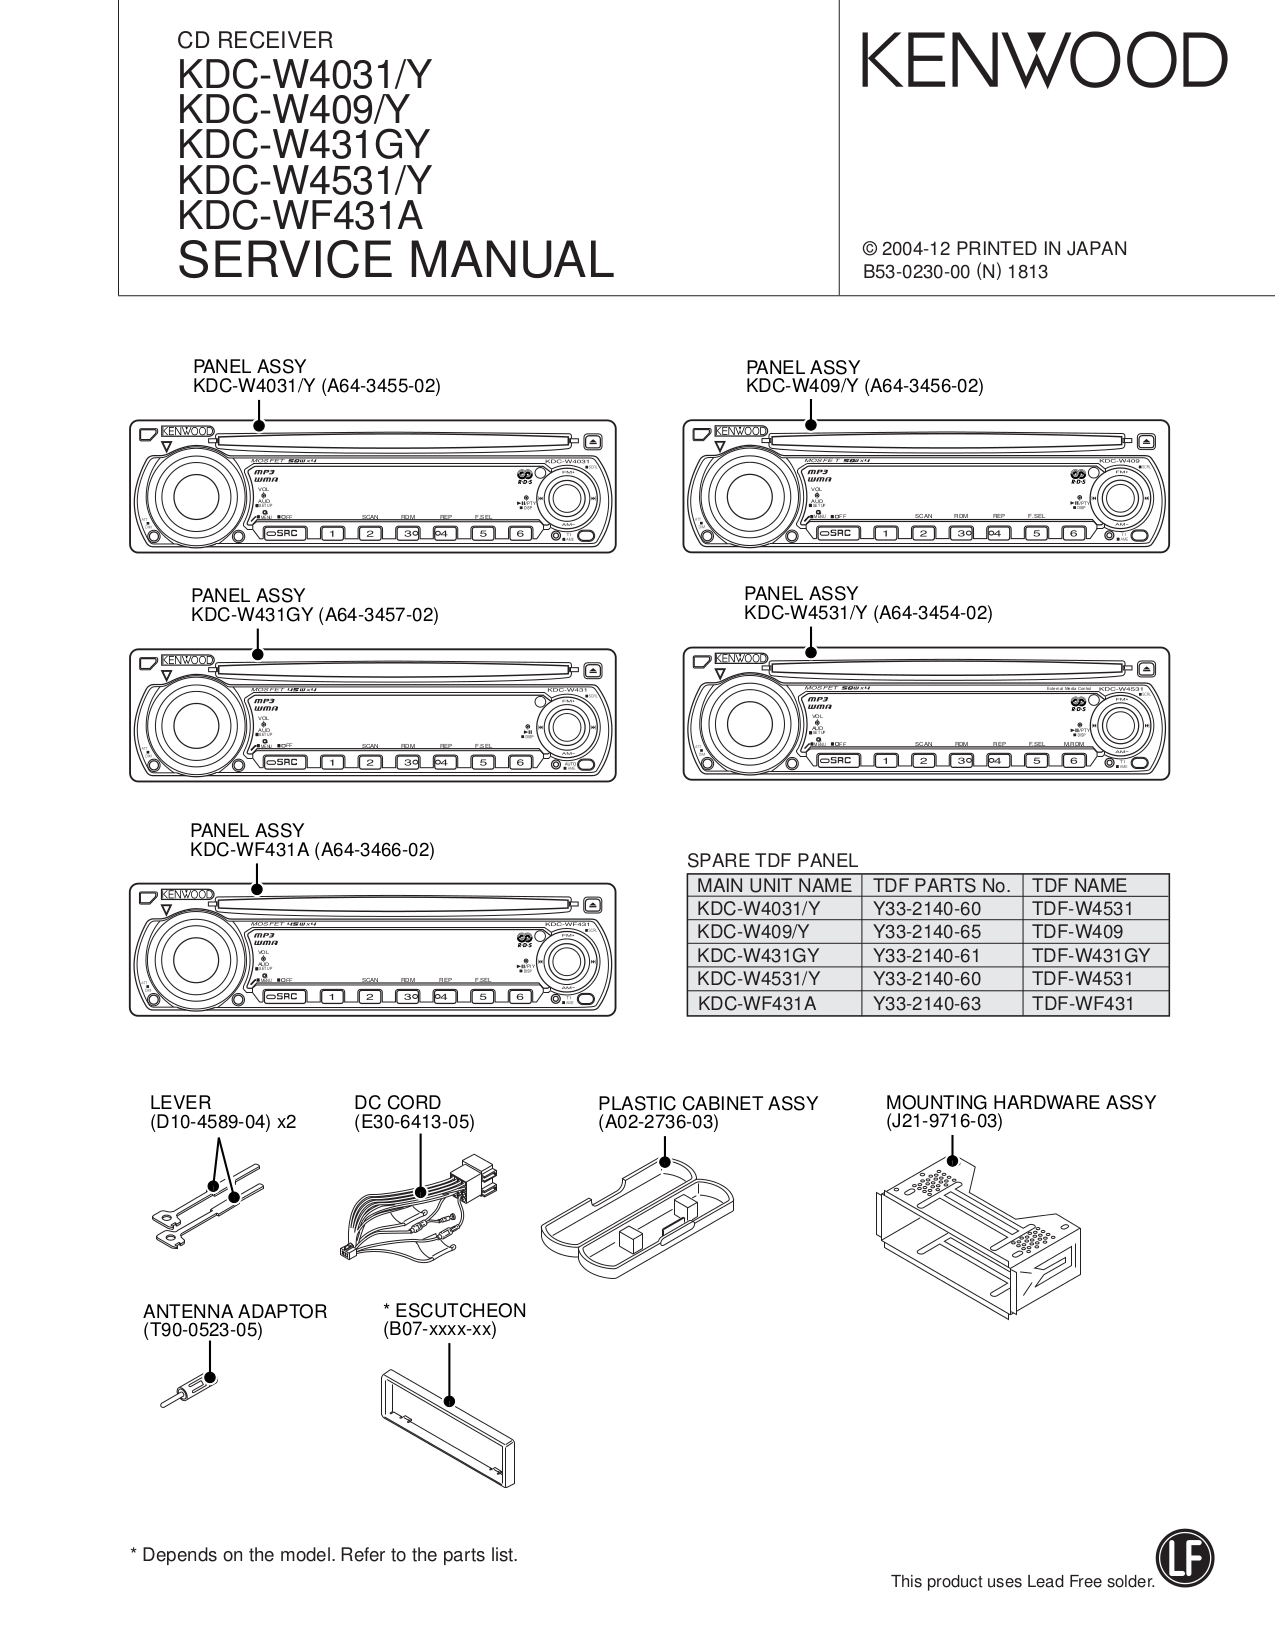 KDC W4031_W409_W431GY_W4531_WF431A.pdf 0 download free pdf for kenwood kdc 135 car receiver manual kenwood kdc 135 wiring diagram at n-0.co